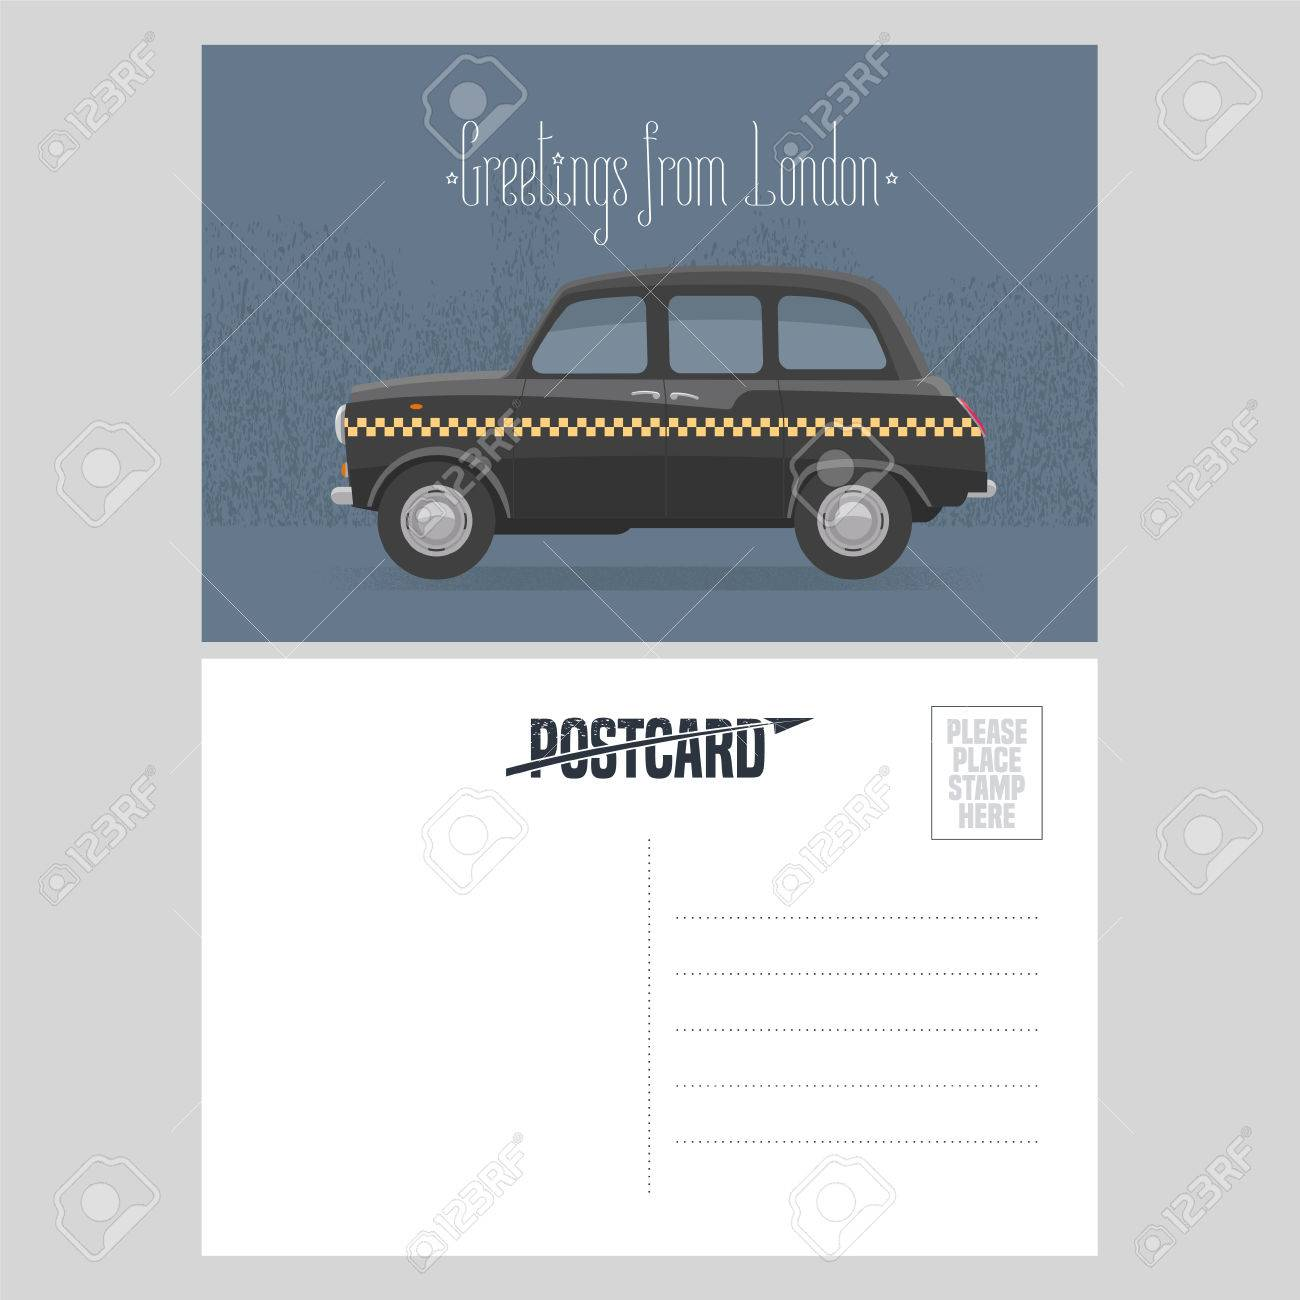 Postcard With Cab And Greetings From London Sign Vector Illustration Template Double Sides Blank Card